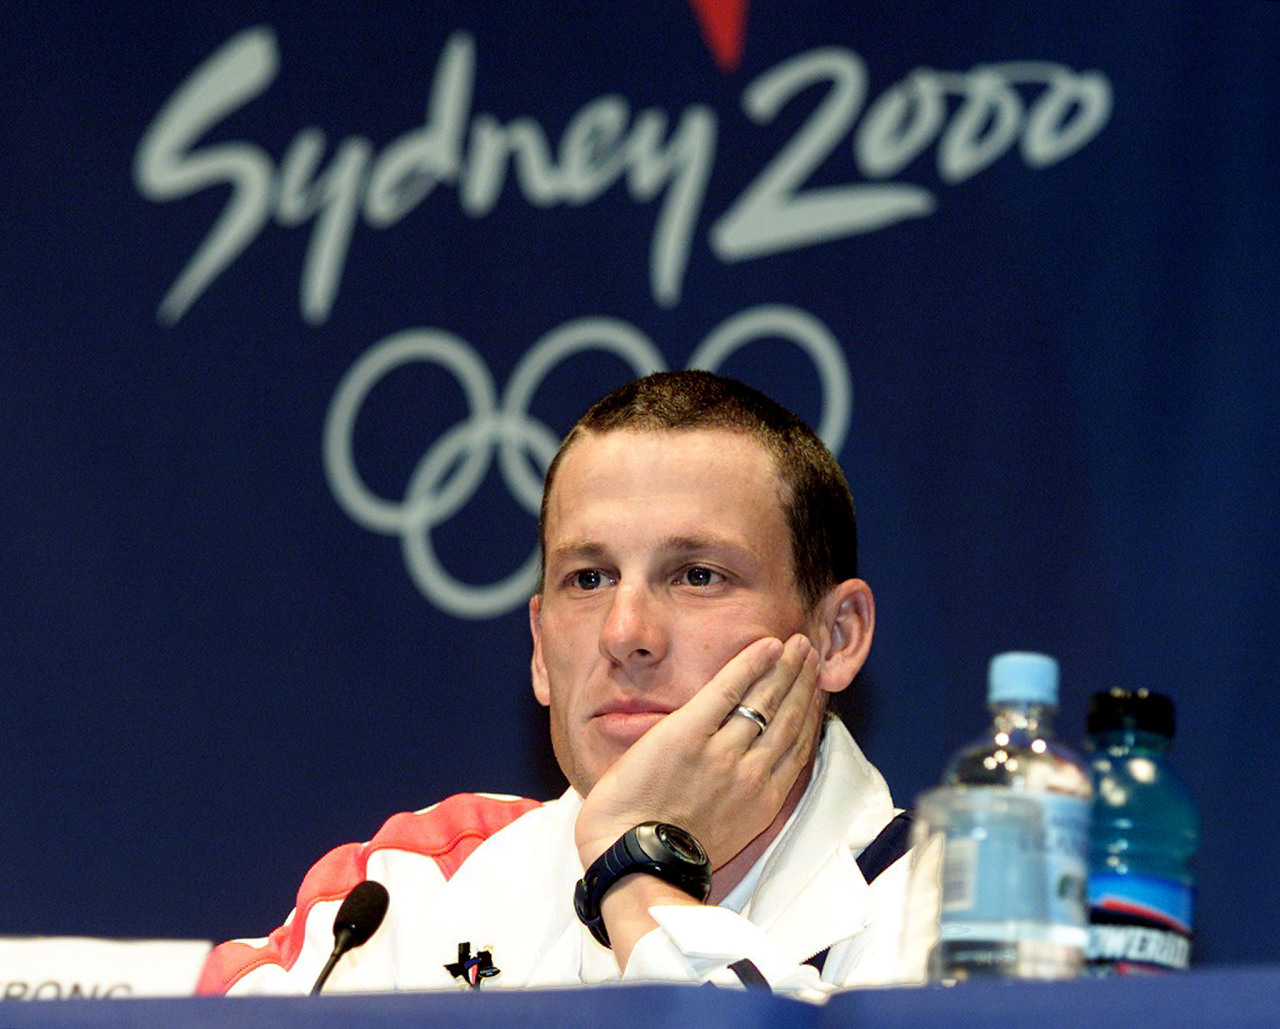 "Lance Armstrong has been stripped of his 2000 Olympic Games cycling time trial bronze medal by the International Olympic Committee, continuing the once dominant rider's spectacular fall from grace after a doping storm. ""We have written asking for the return of the medal from the Sydney 2000 Games,"" an IOC official told Reuters on Thursday after the decision to take away the last major title held by the disgraced American. The retired Armstrong was stripped of his seven Tour de France titles and banned for life by the International Cycling Union (UCI) in October after several riders testified that he took drugs. READ ON: Lance Armstrong stripped of 2000 bronze medal"